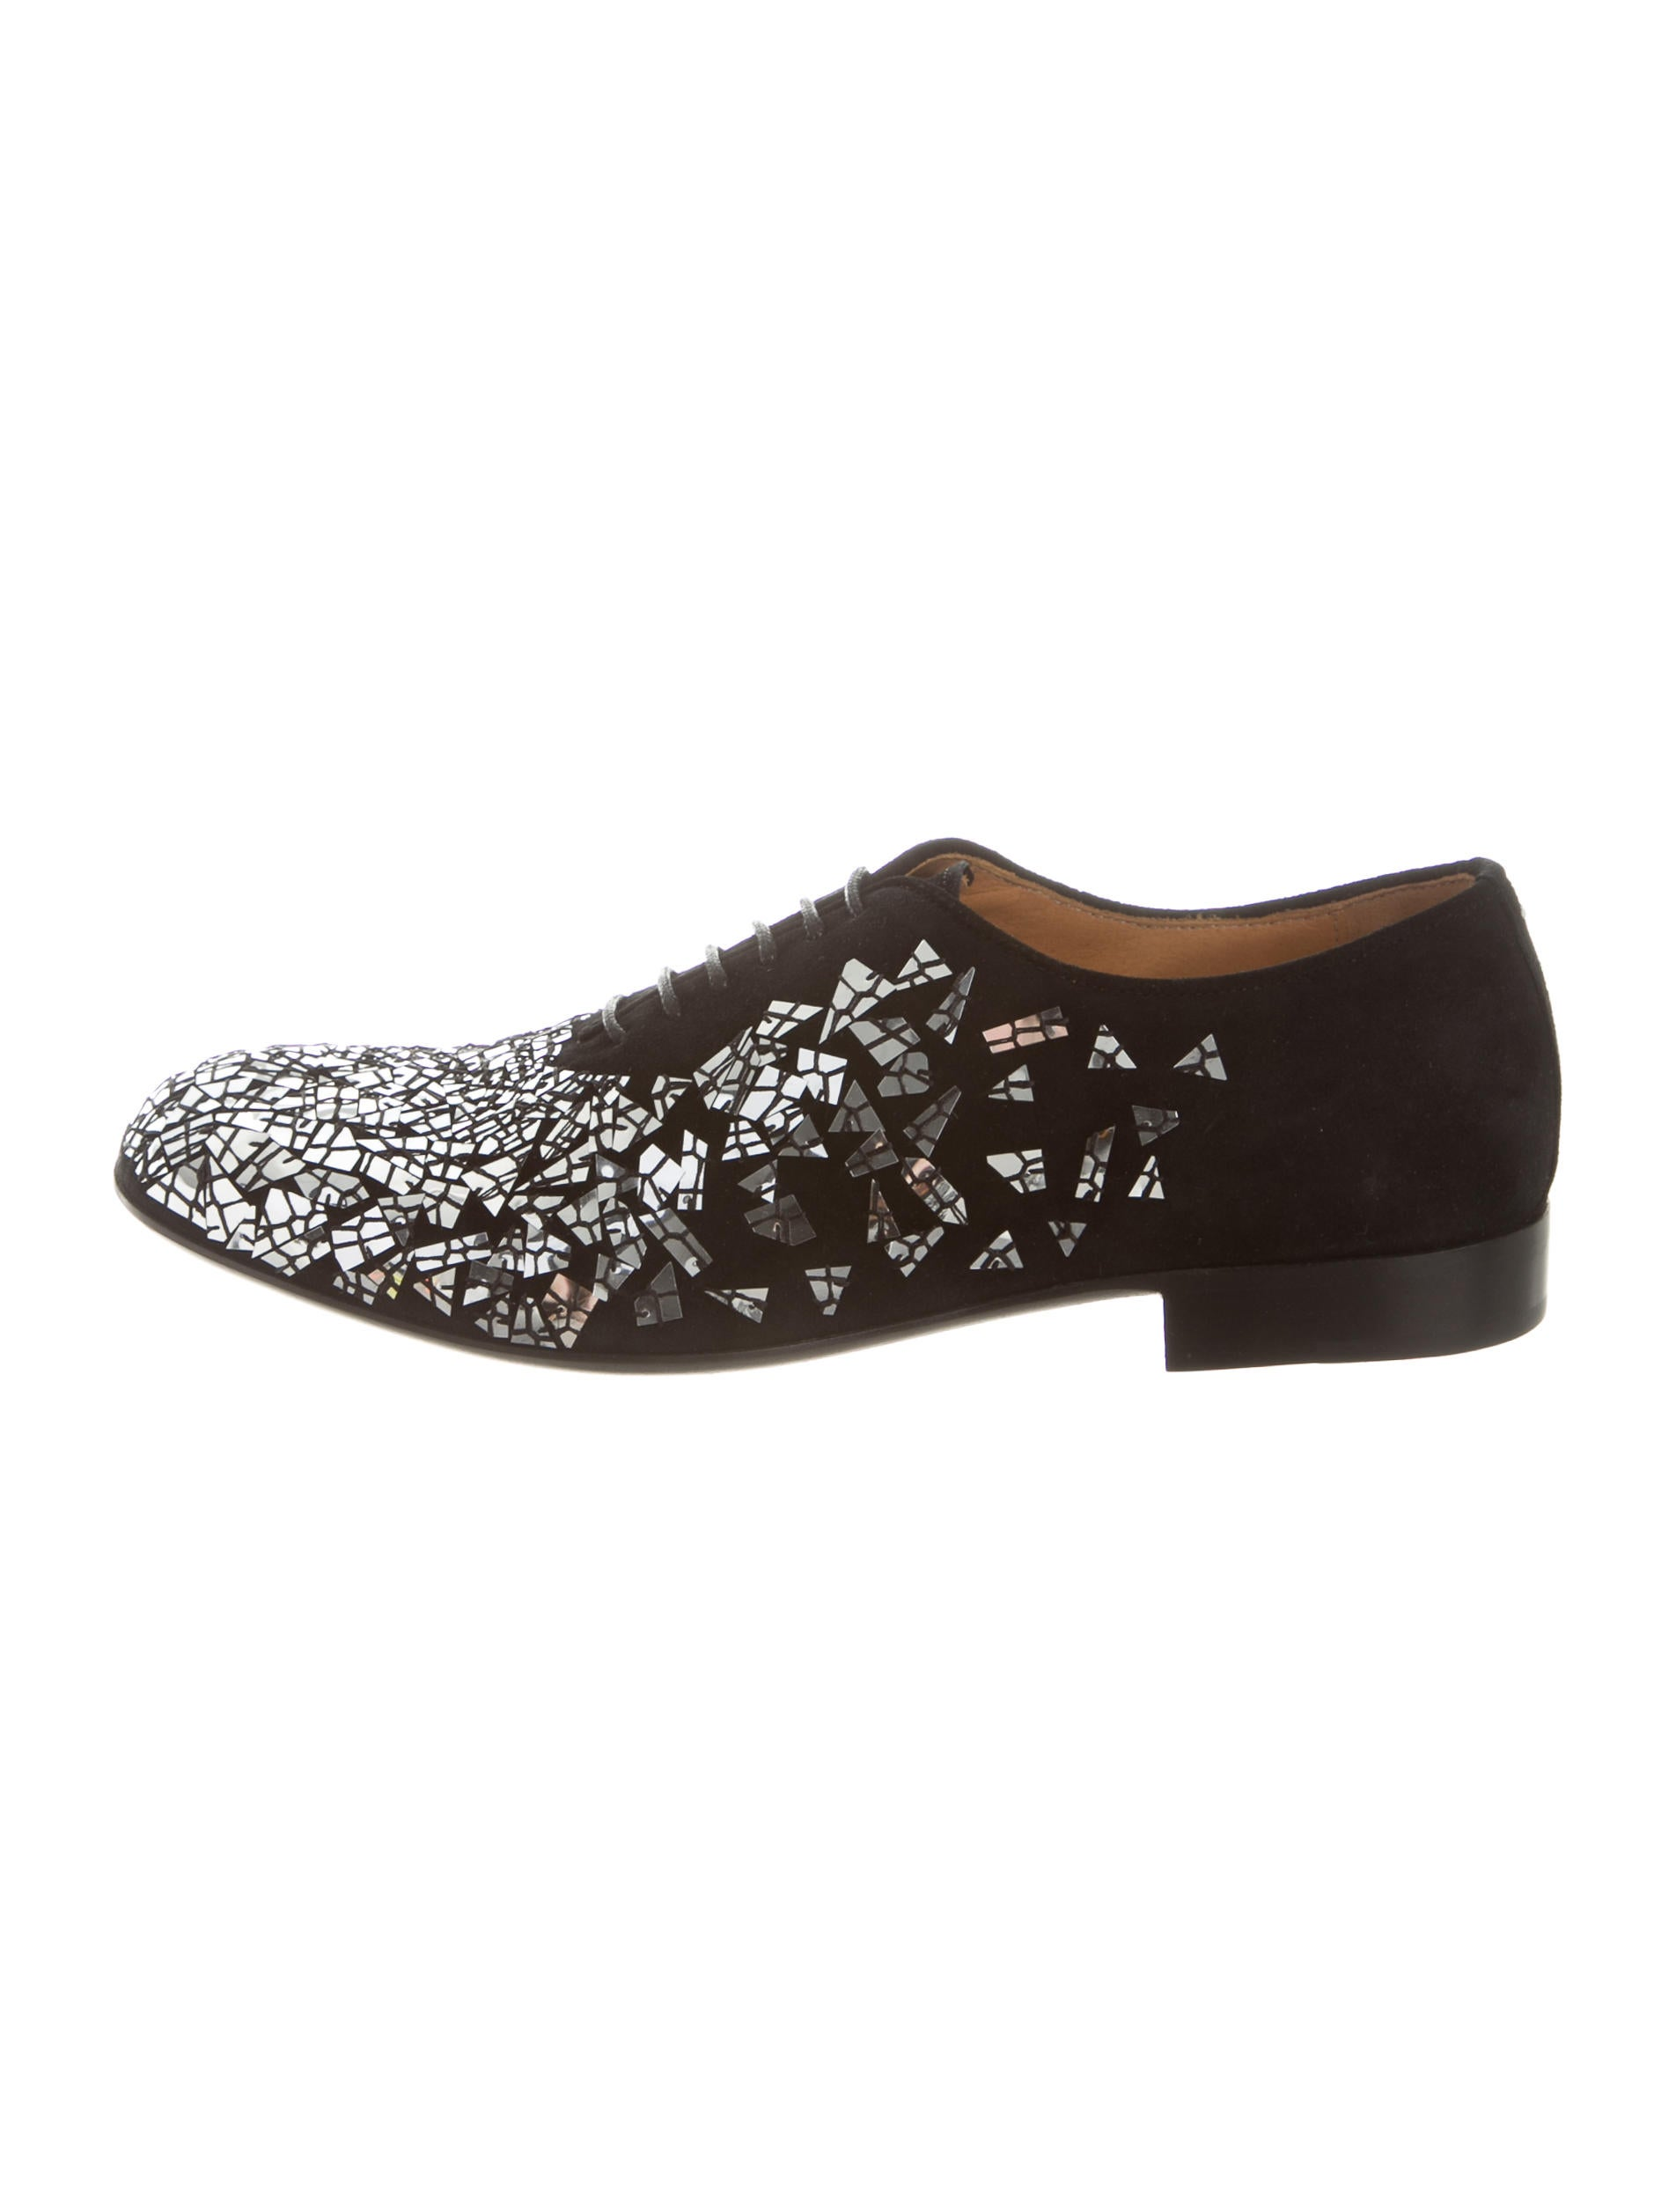 Maison Margiela Patent Leather Round-Toe Oxfords w/ Tags sale cheap price buy cheap largest supplier browse a17Ld6